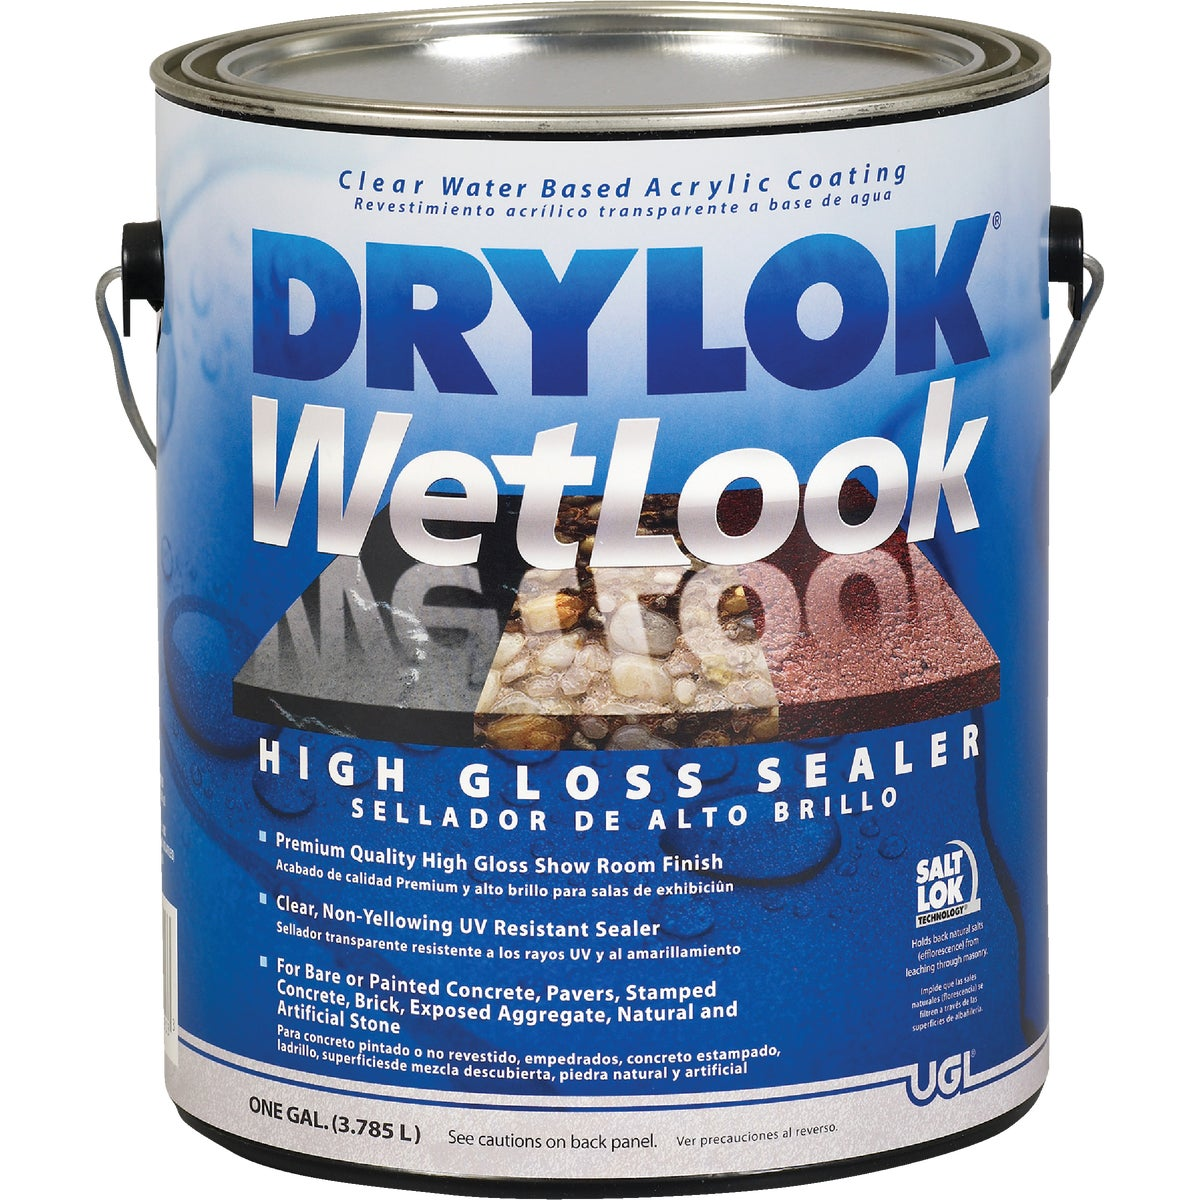 DRYLOK LTX HI-GLS SEALER - 28913 by United Gilsonite Lab